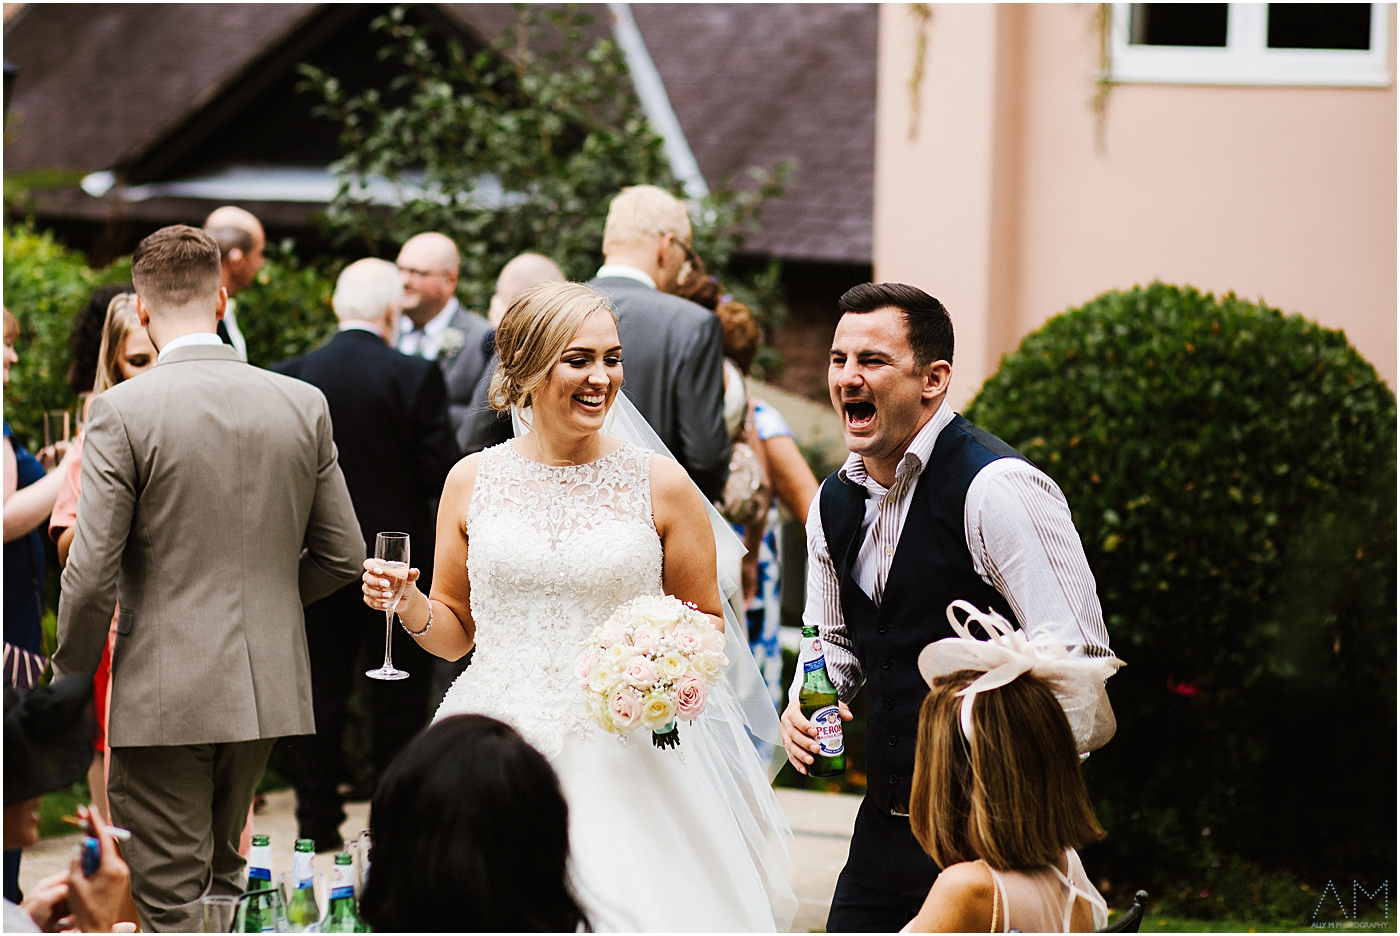 Bride laughing with guest